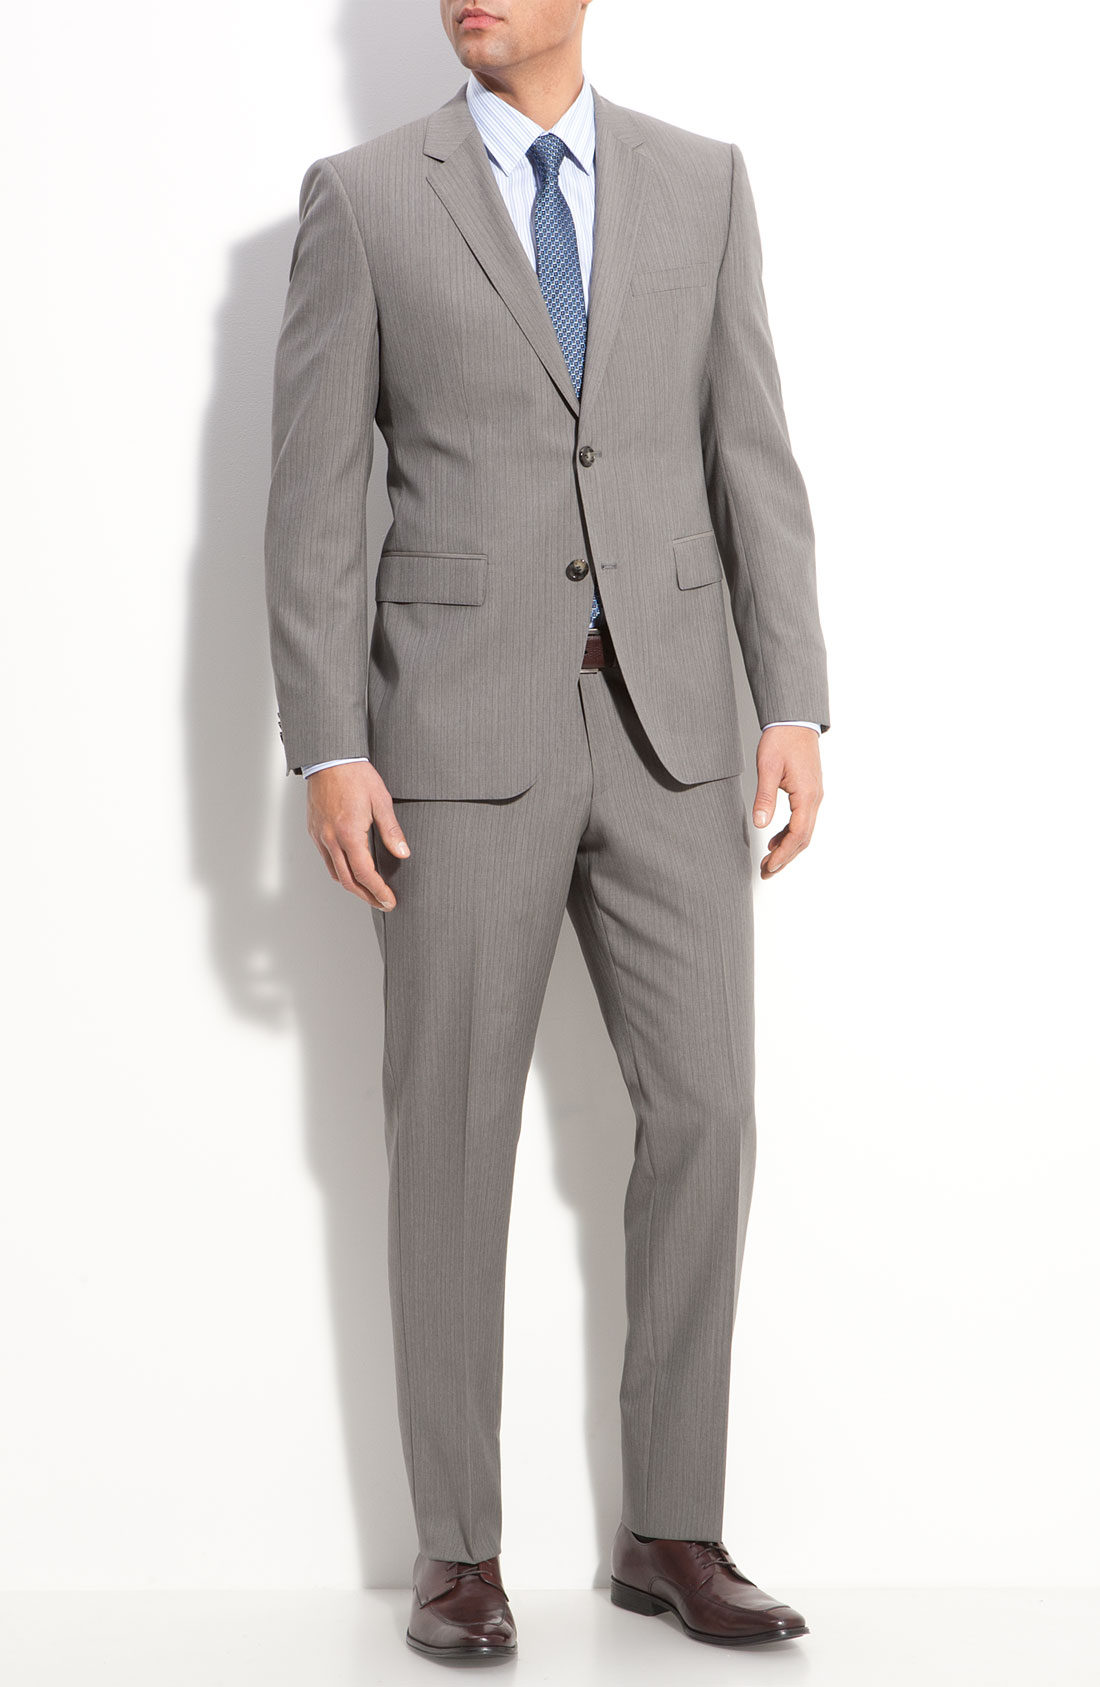 Find great deals on eBay for jam suit. Shop with confidence.